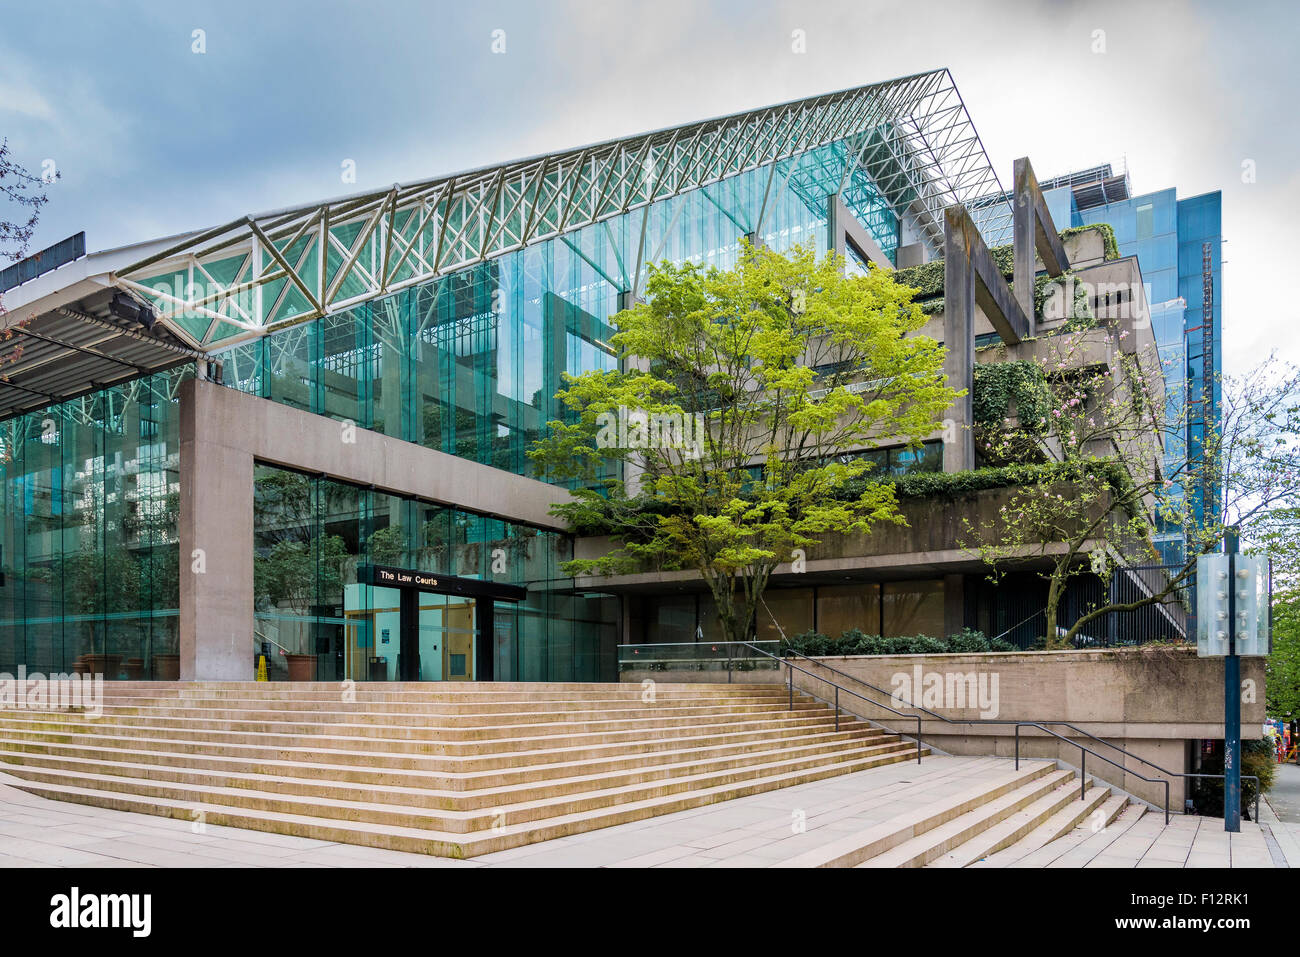 The Law Courts, Robson Square, Vancouver,  British Columbia, Canada - Stock Image